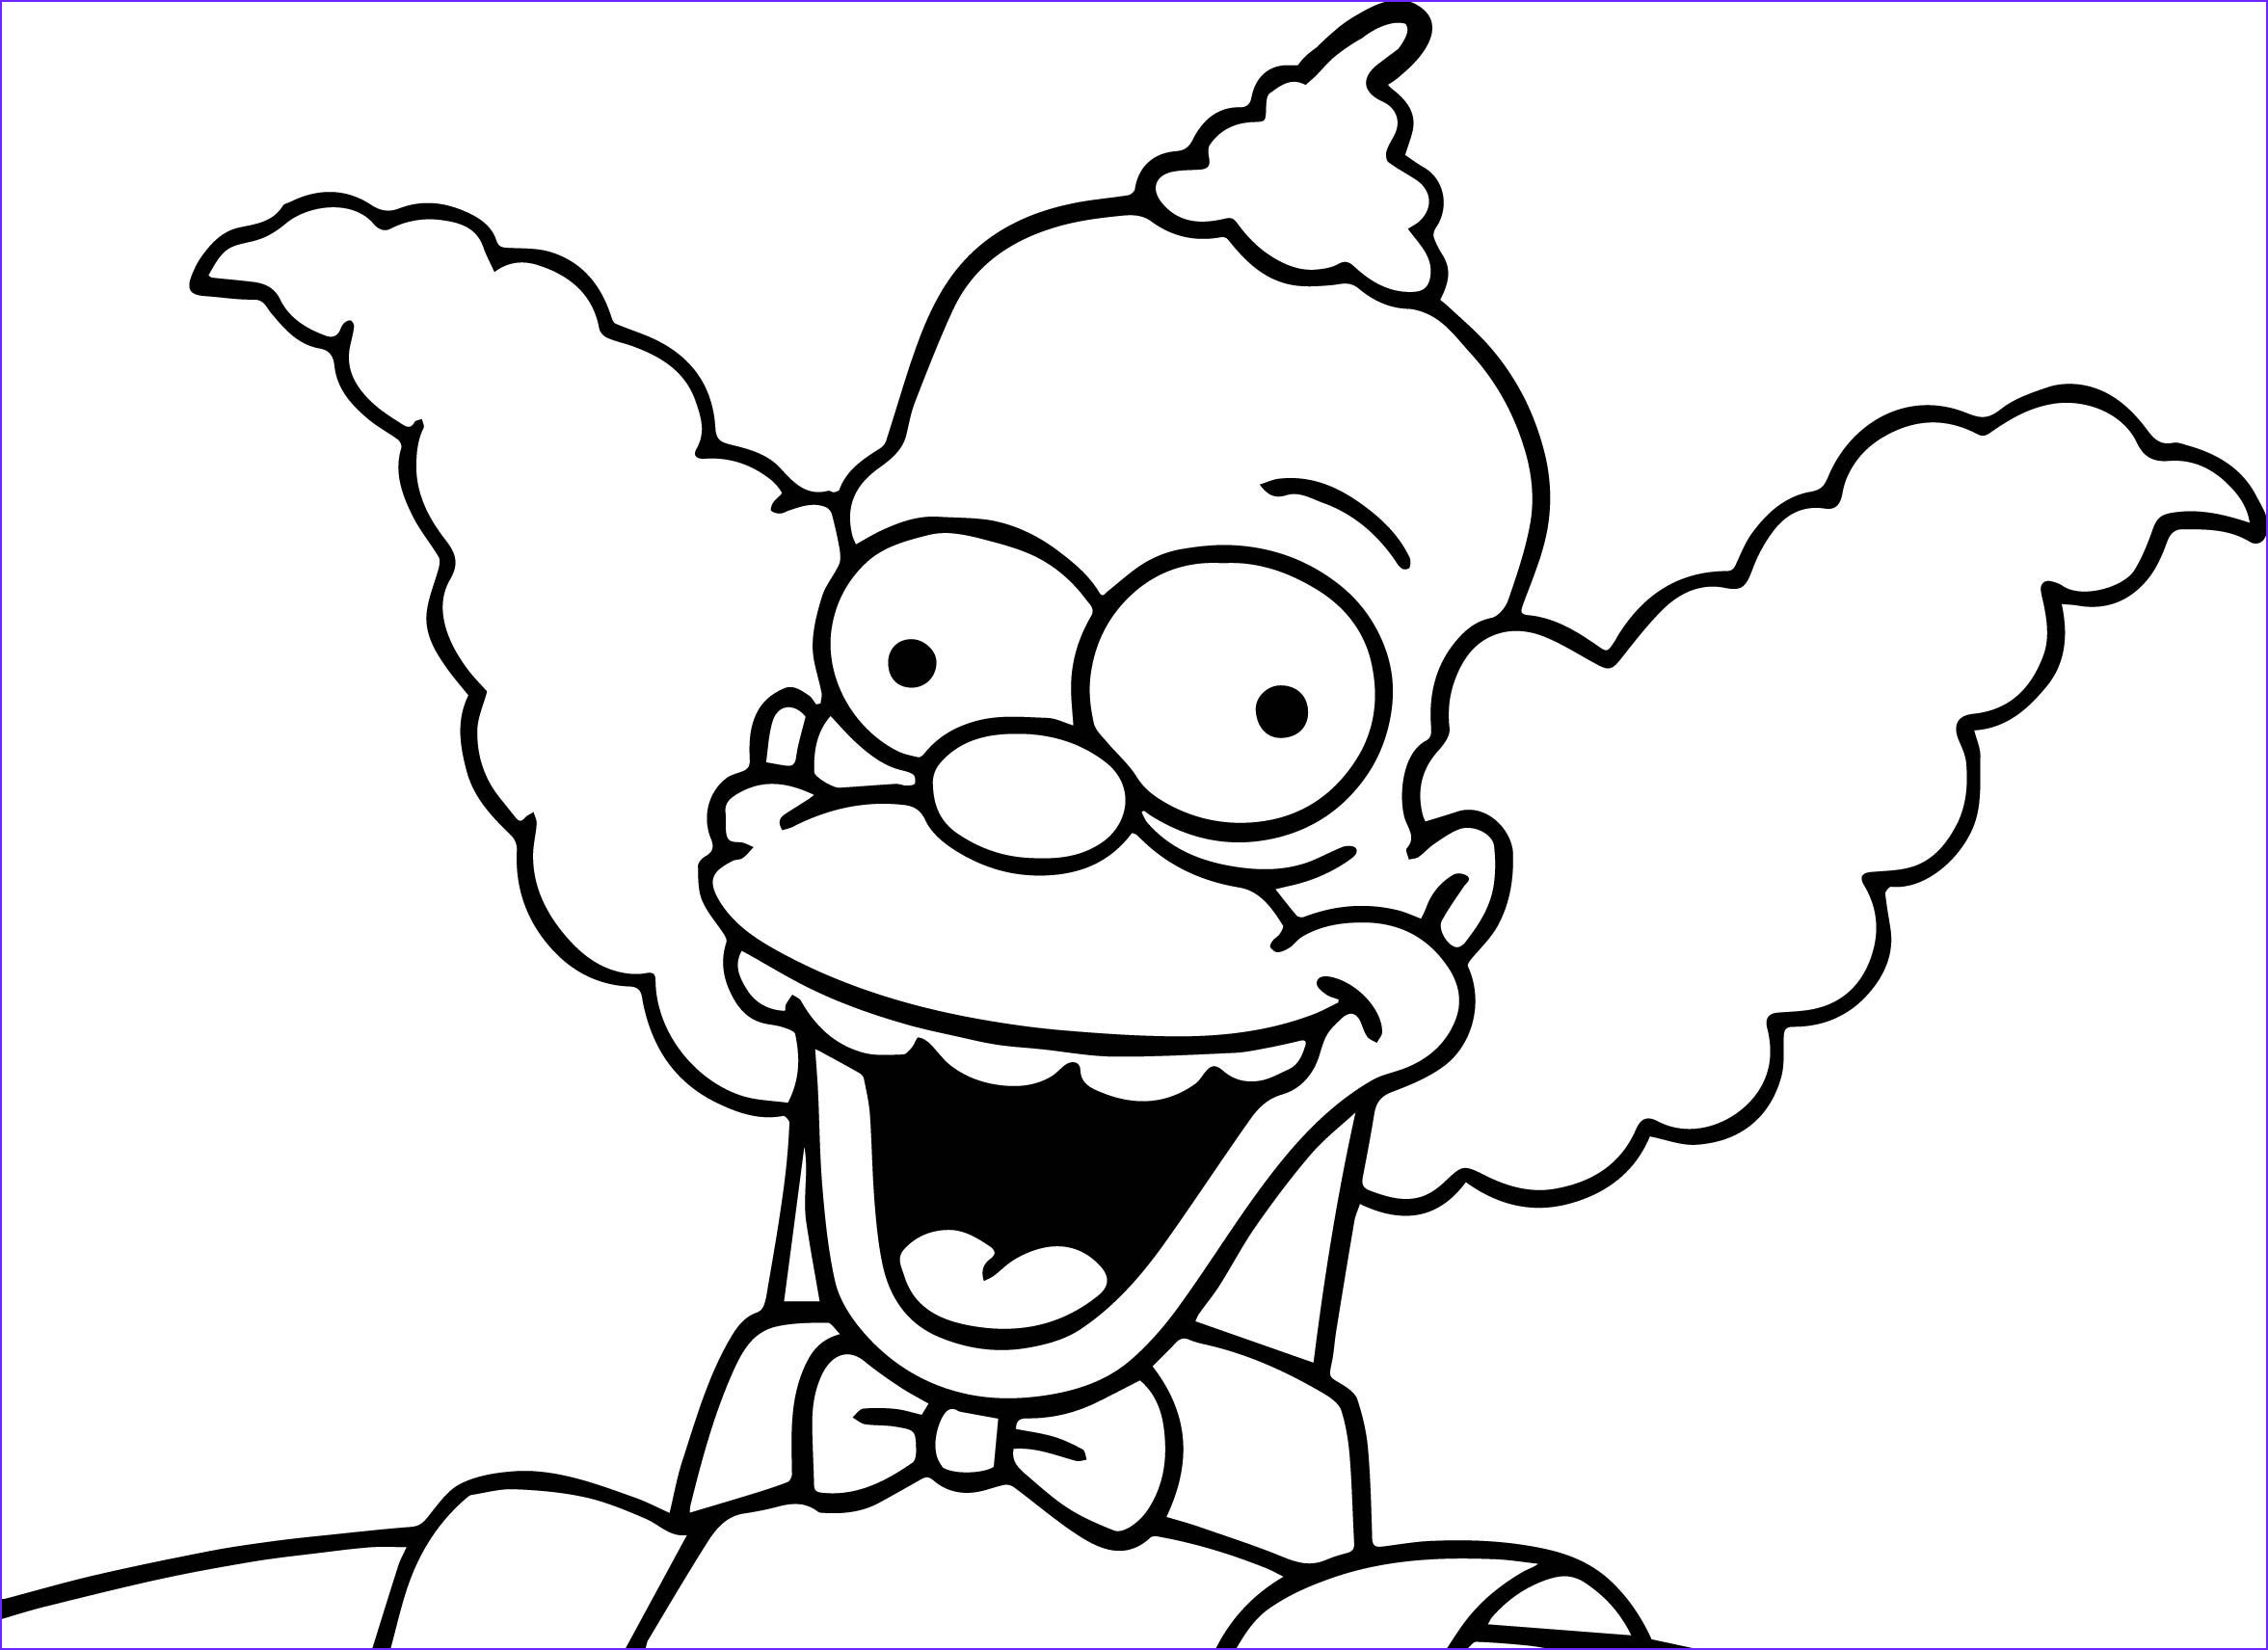 The Simpsons Coloring Page Best Of Photos the Simpsons Krusty Coloring Page